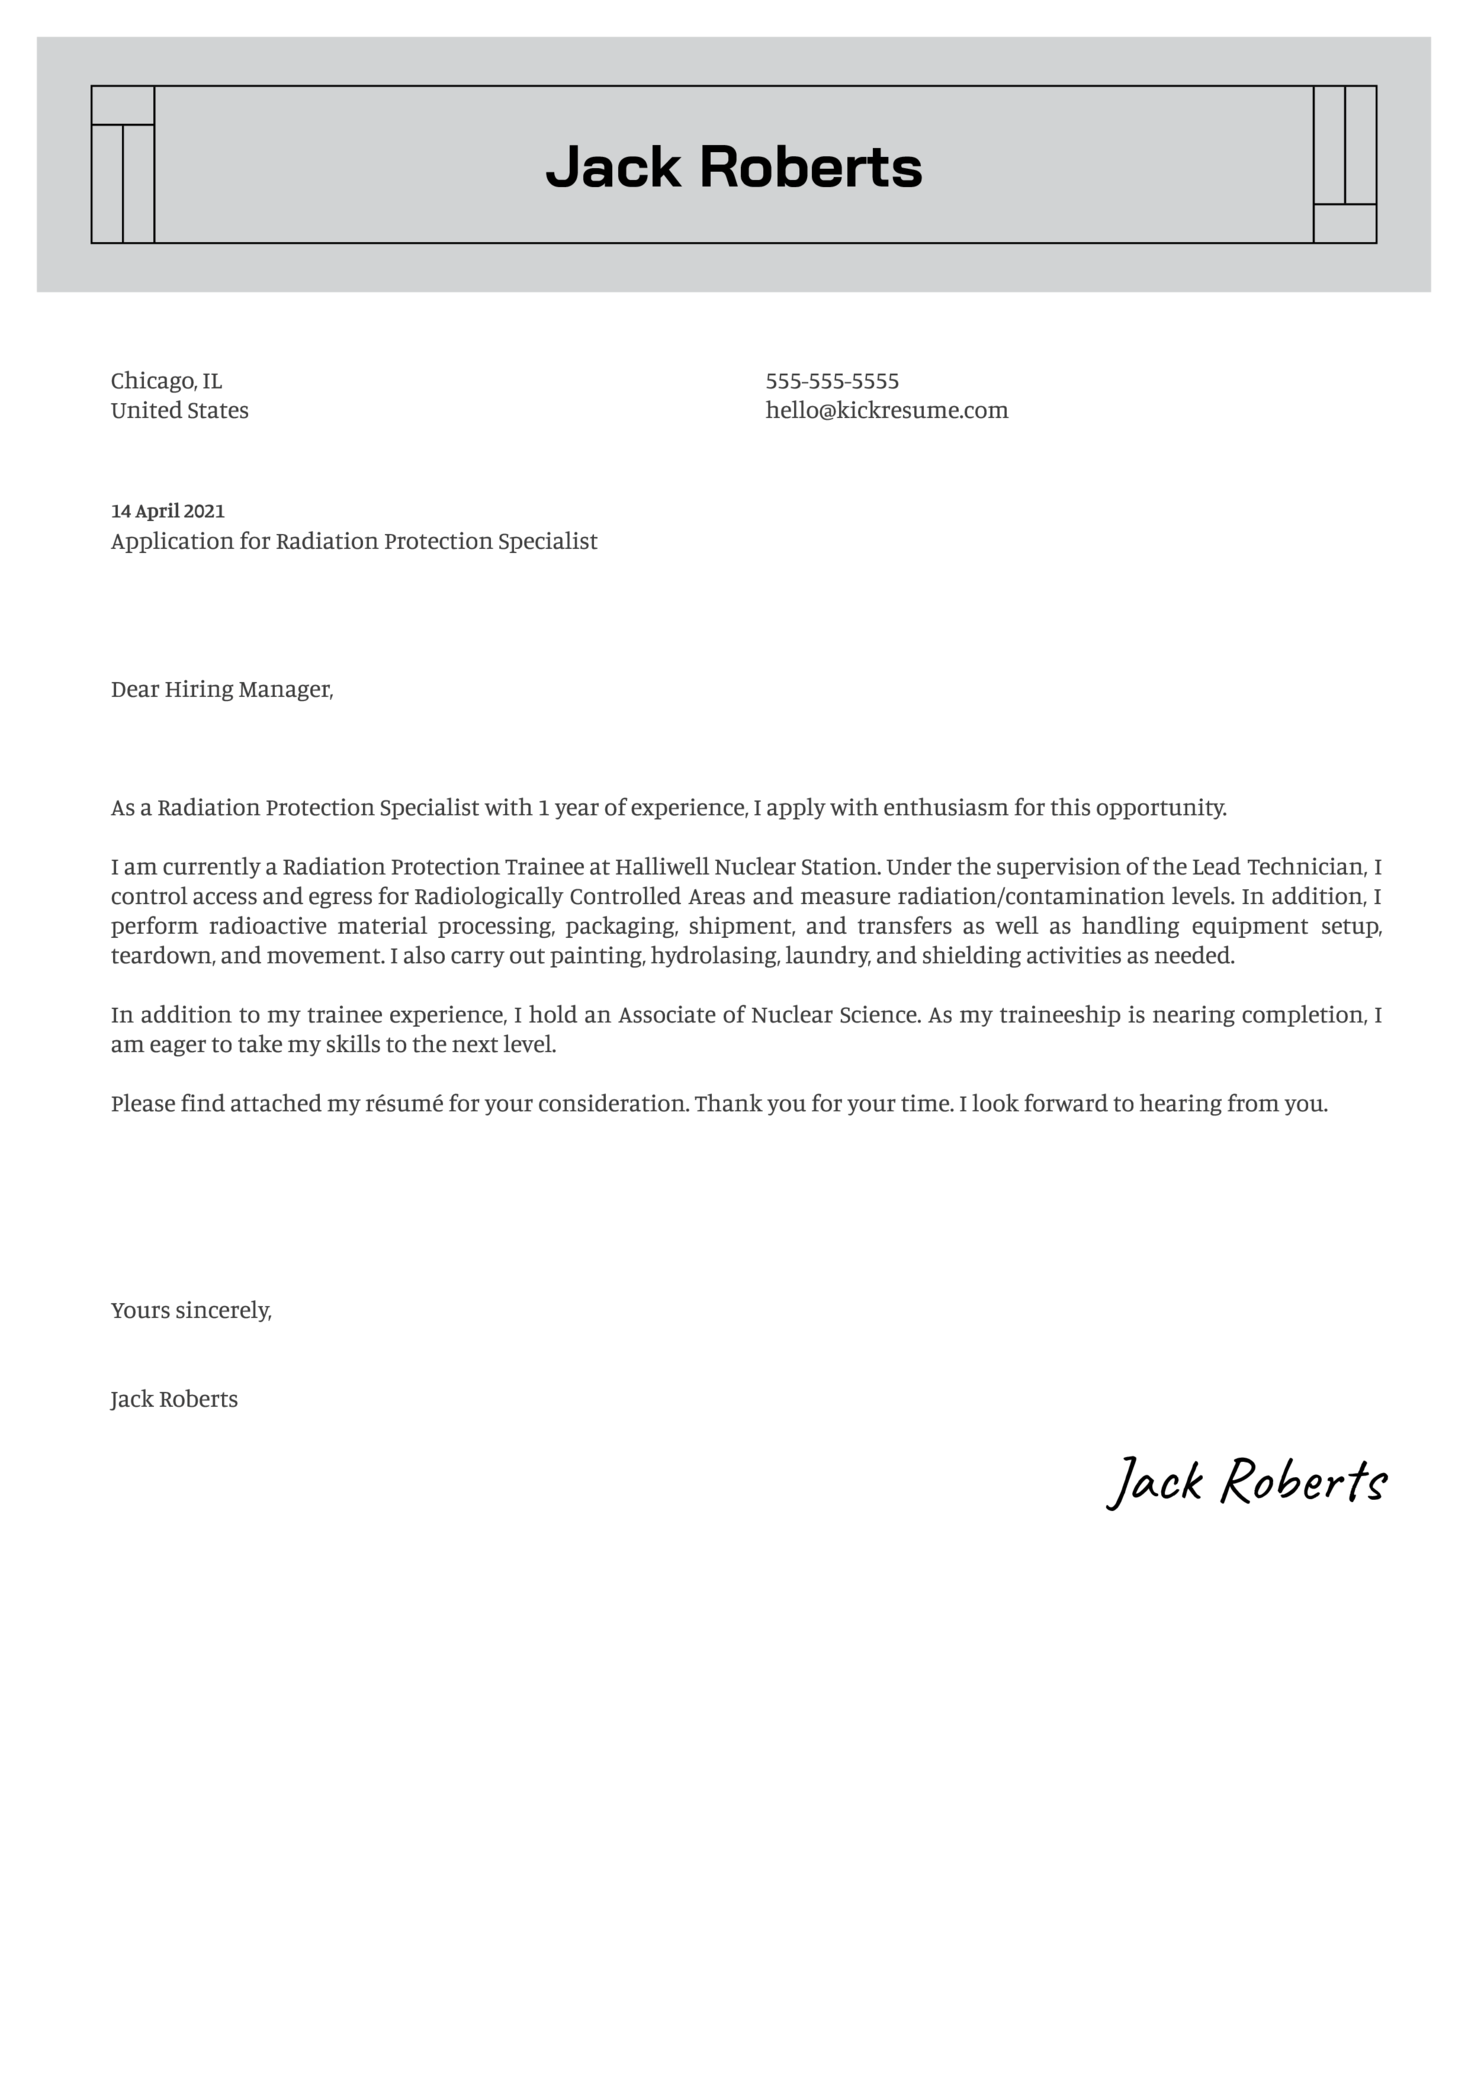 Radiation Protection Technician Cover Letter Template